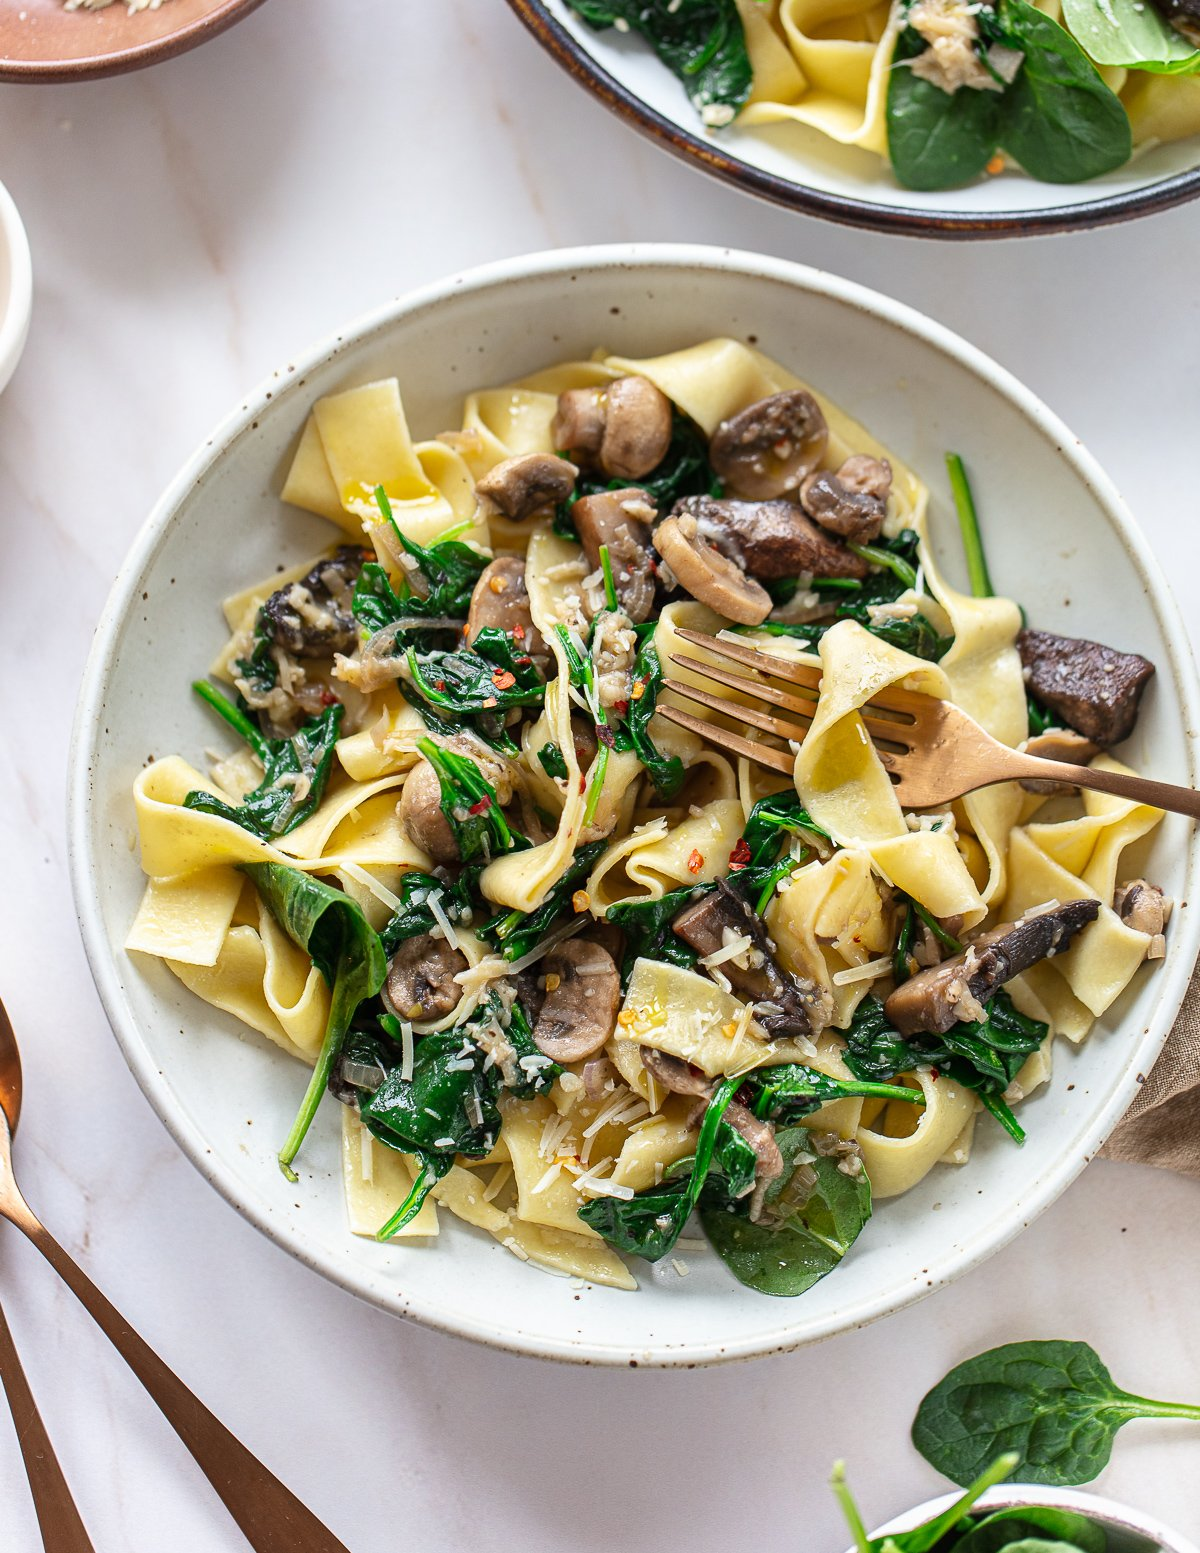 A bowl of pappardelle pasta noodles with a fork on the side, topped with sauteed mushrooms, spinach and Parmesan cheese